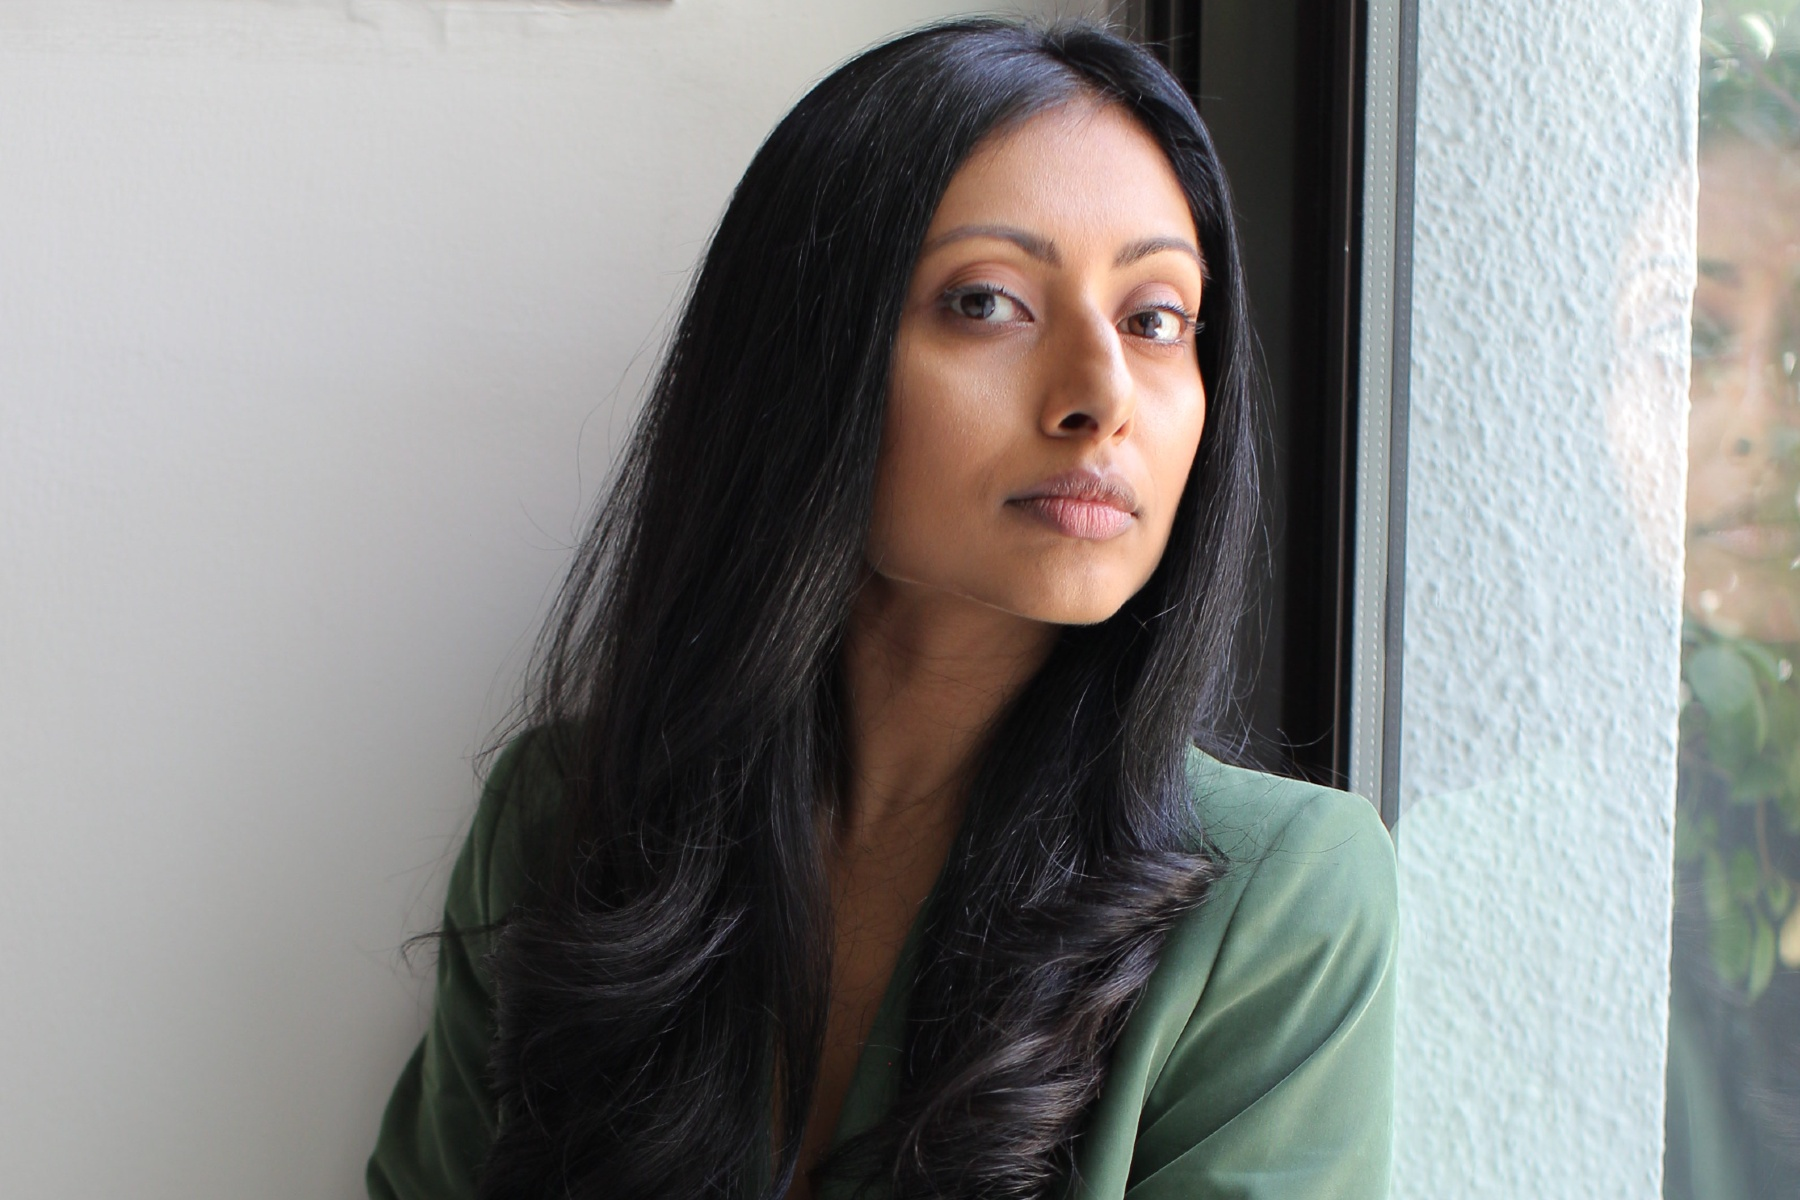 Avni Doshi, born in the US and now living in Dubai, has previously spoken about the long journey to her first novel, which was released in India last year as Girl in White Cotton and for its UK release in July.